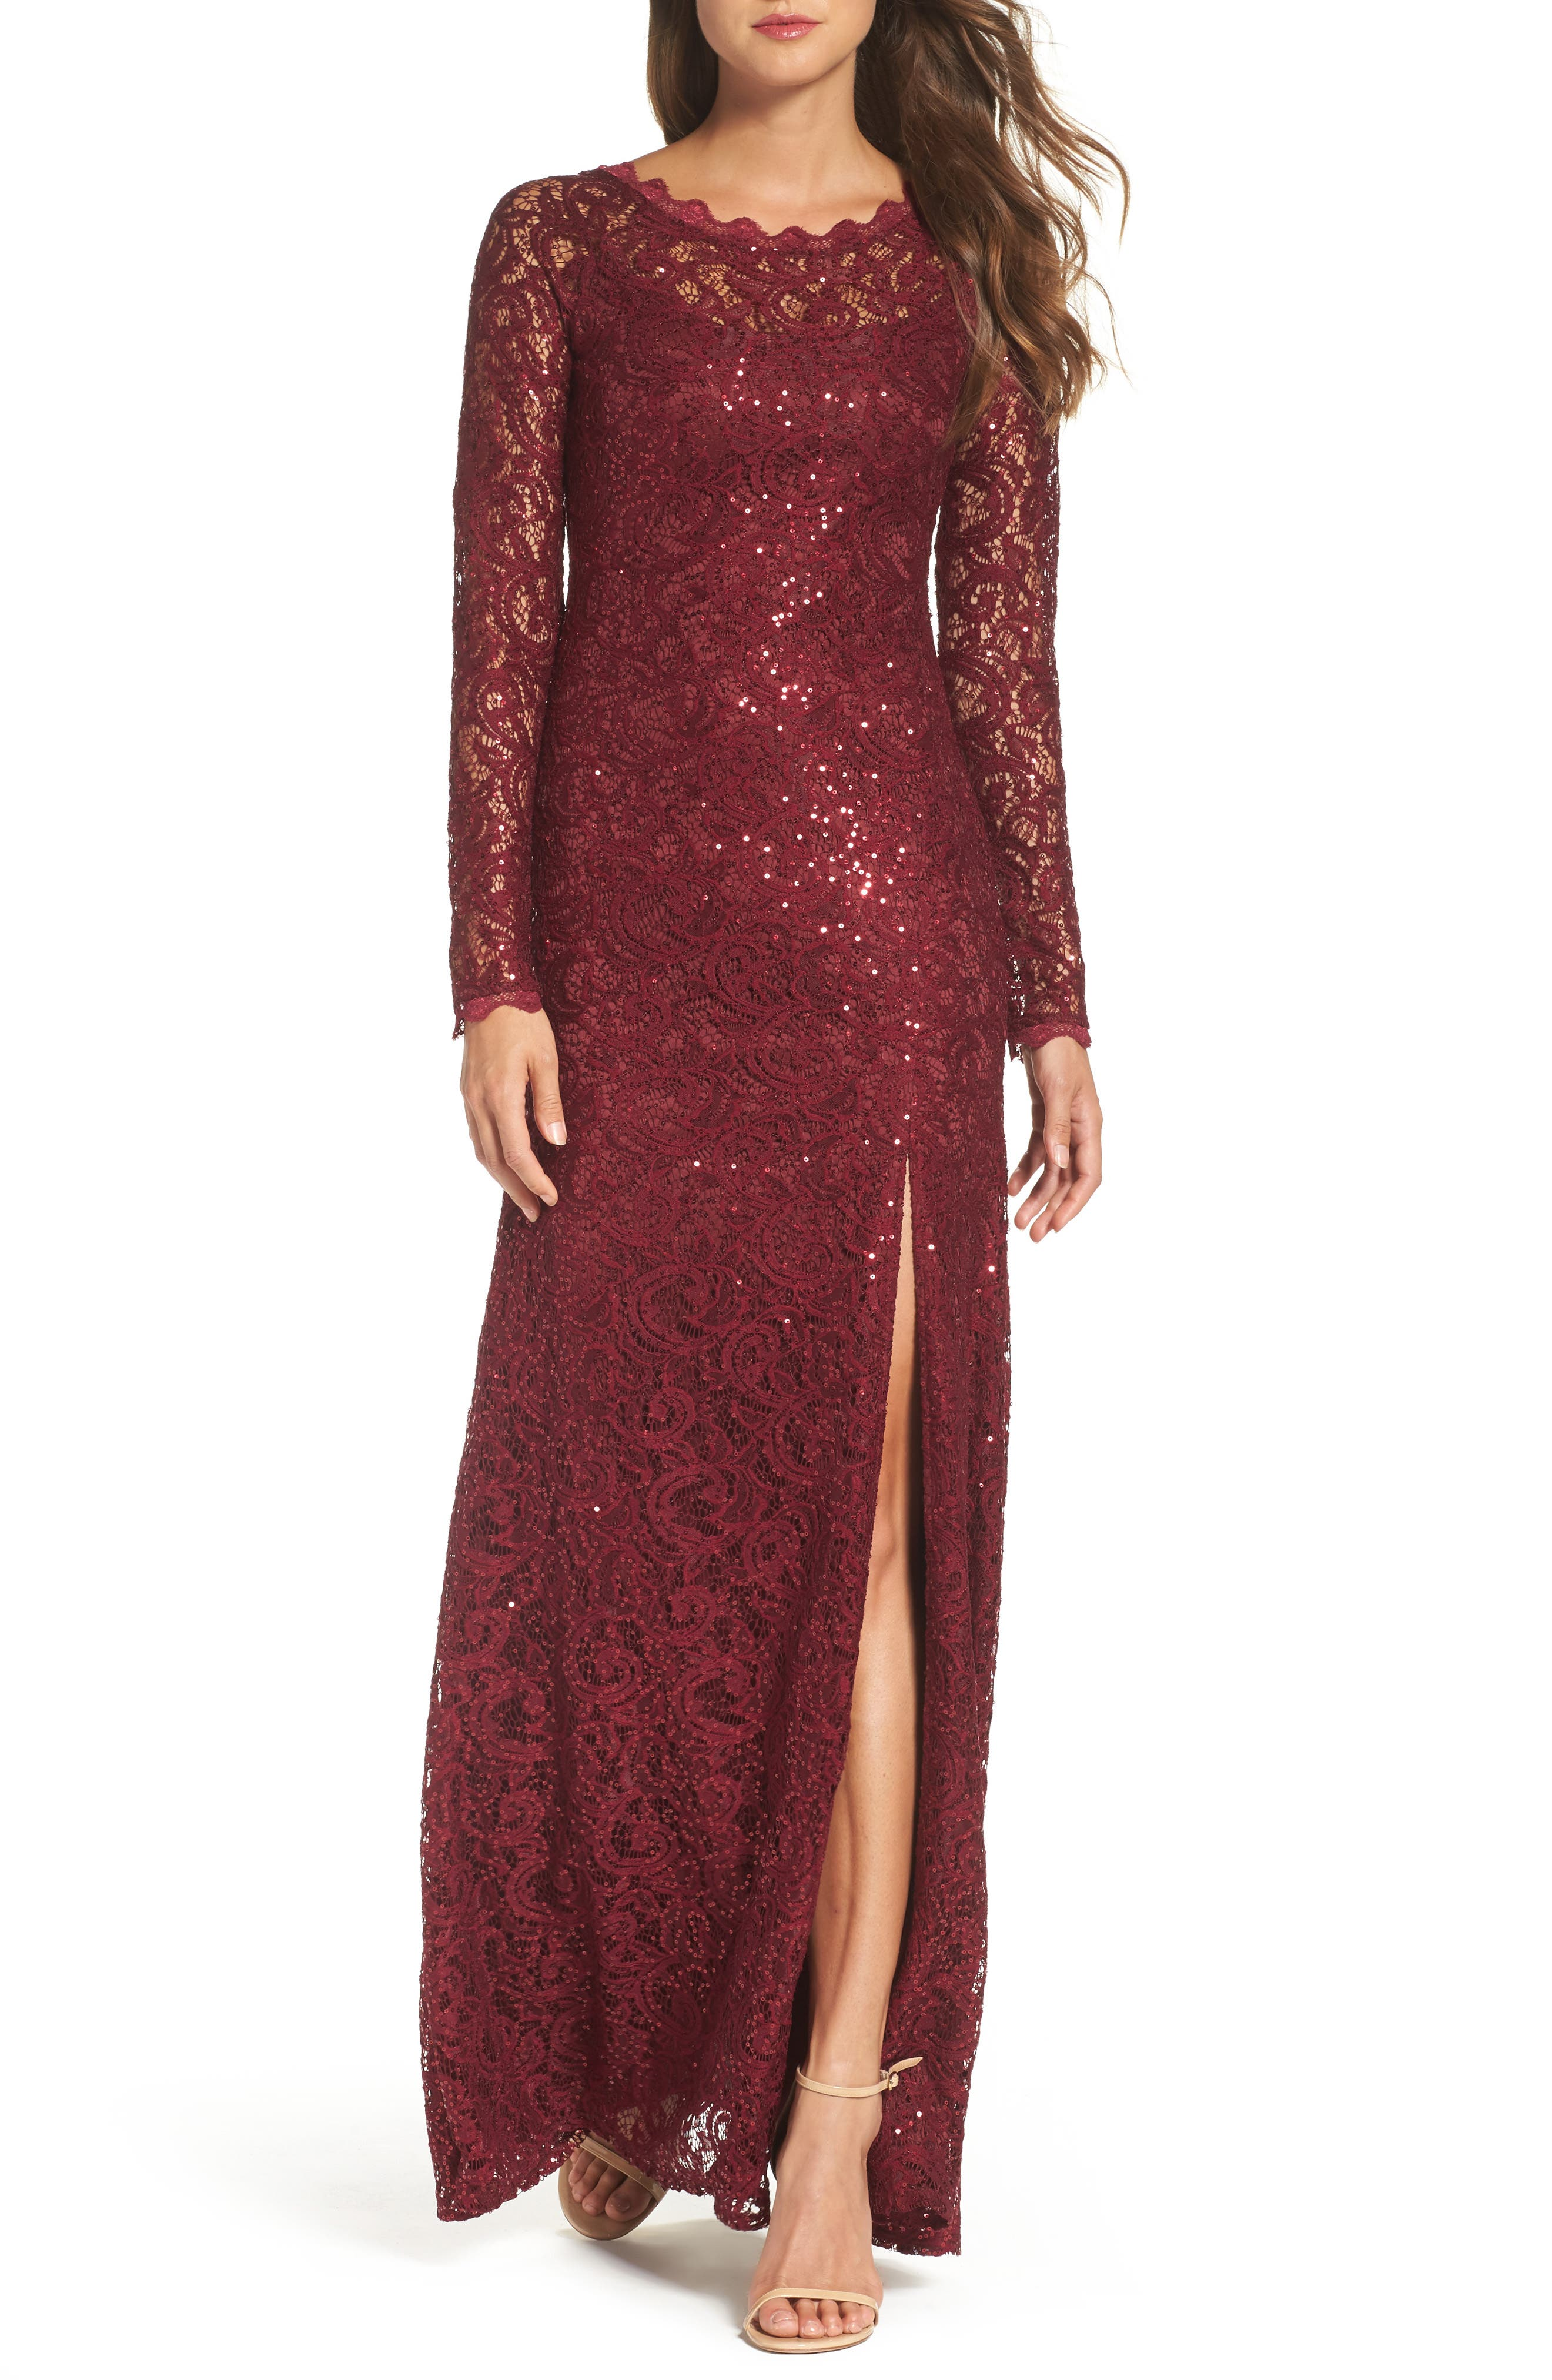 Sequin Hearts Sequin Lace Gown